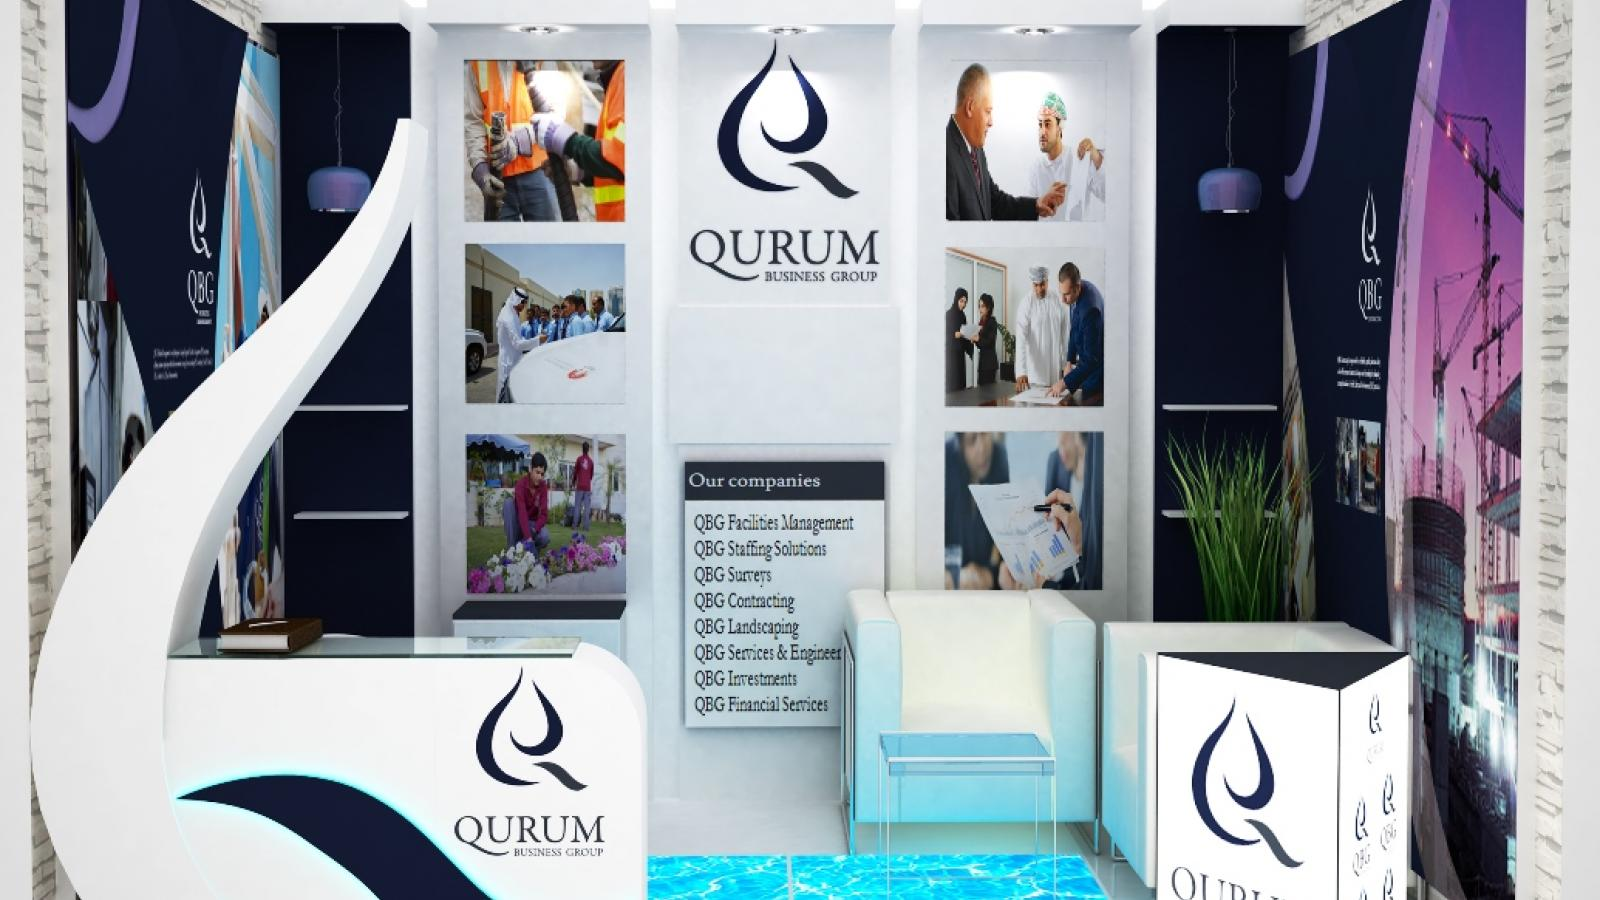 Qurum Business Group Gears Up For Cityscape Global 2015